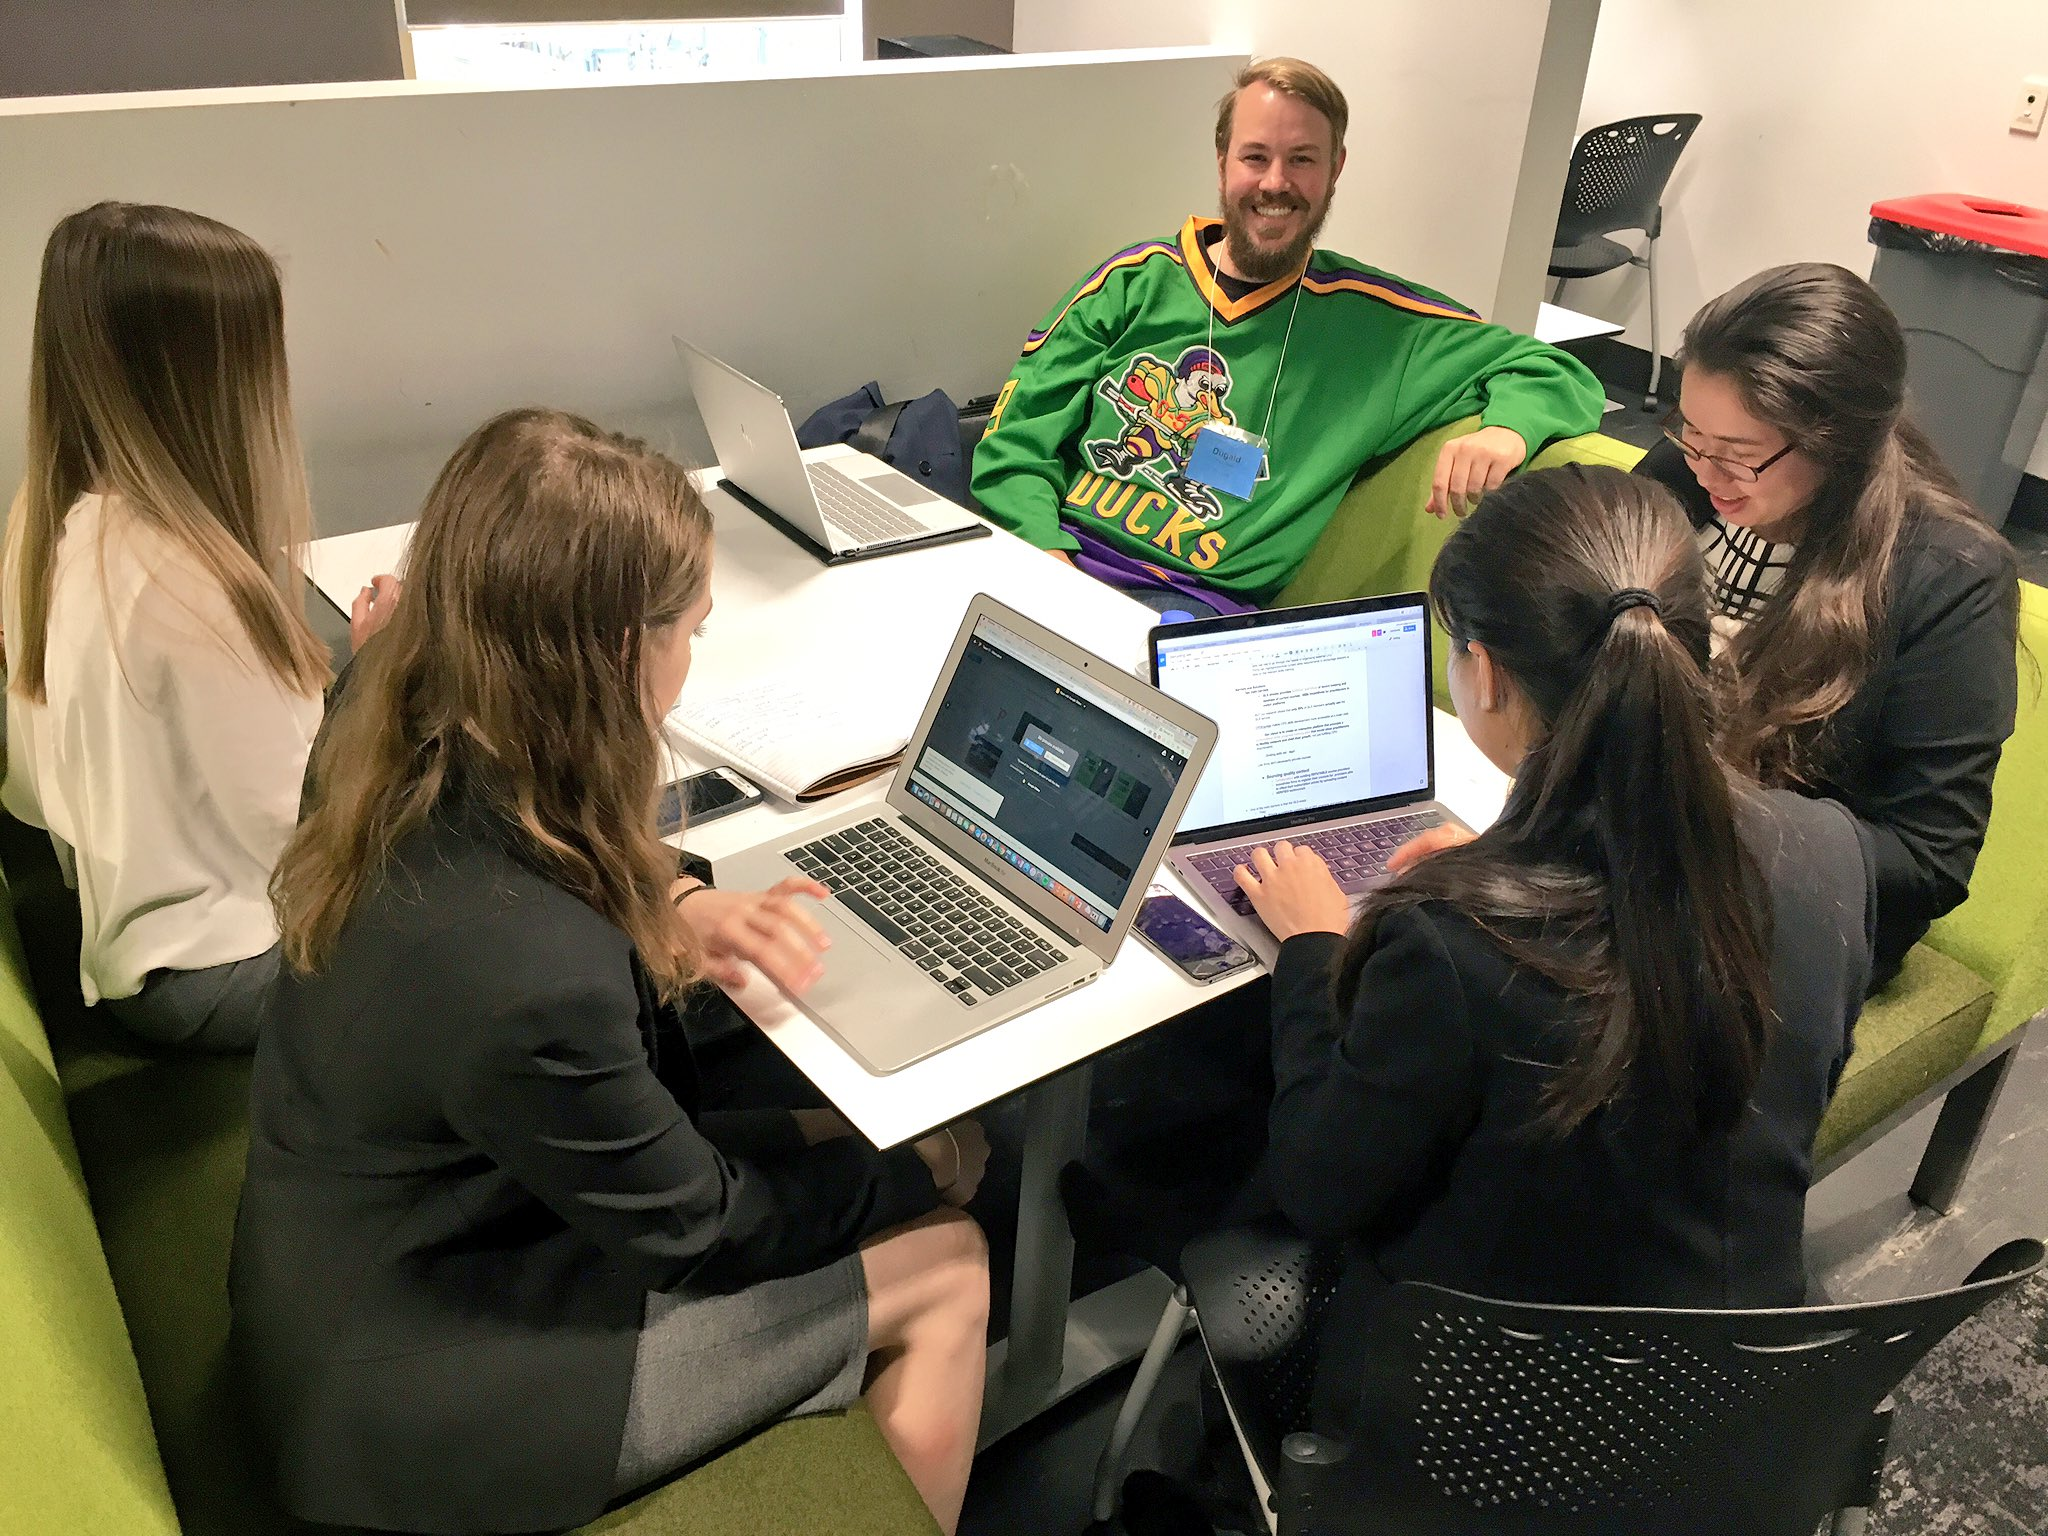 #DisruptingLaw update from the ground: here's the @AllensLegal mentees with Dugald, the floating mentor from @_23Legal #auslaw #Legaltech https://t.co/Q6SPakGErM